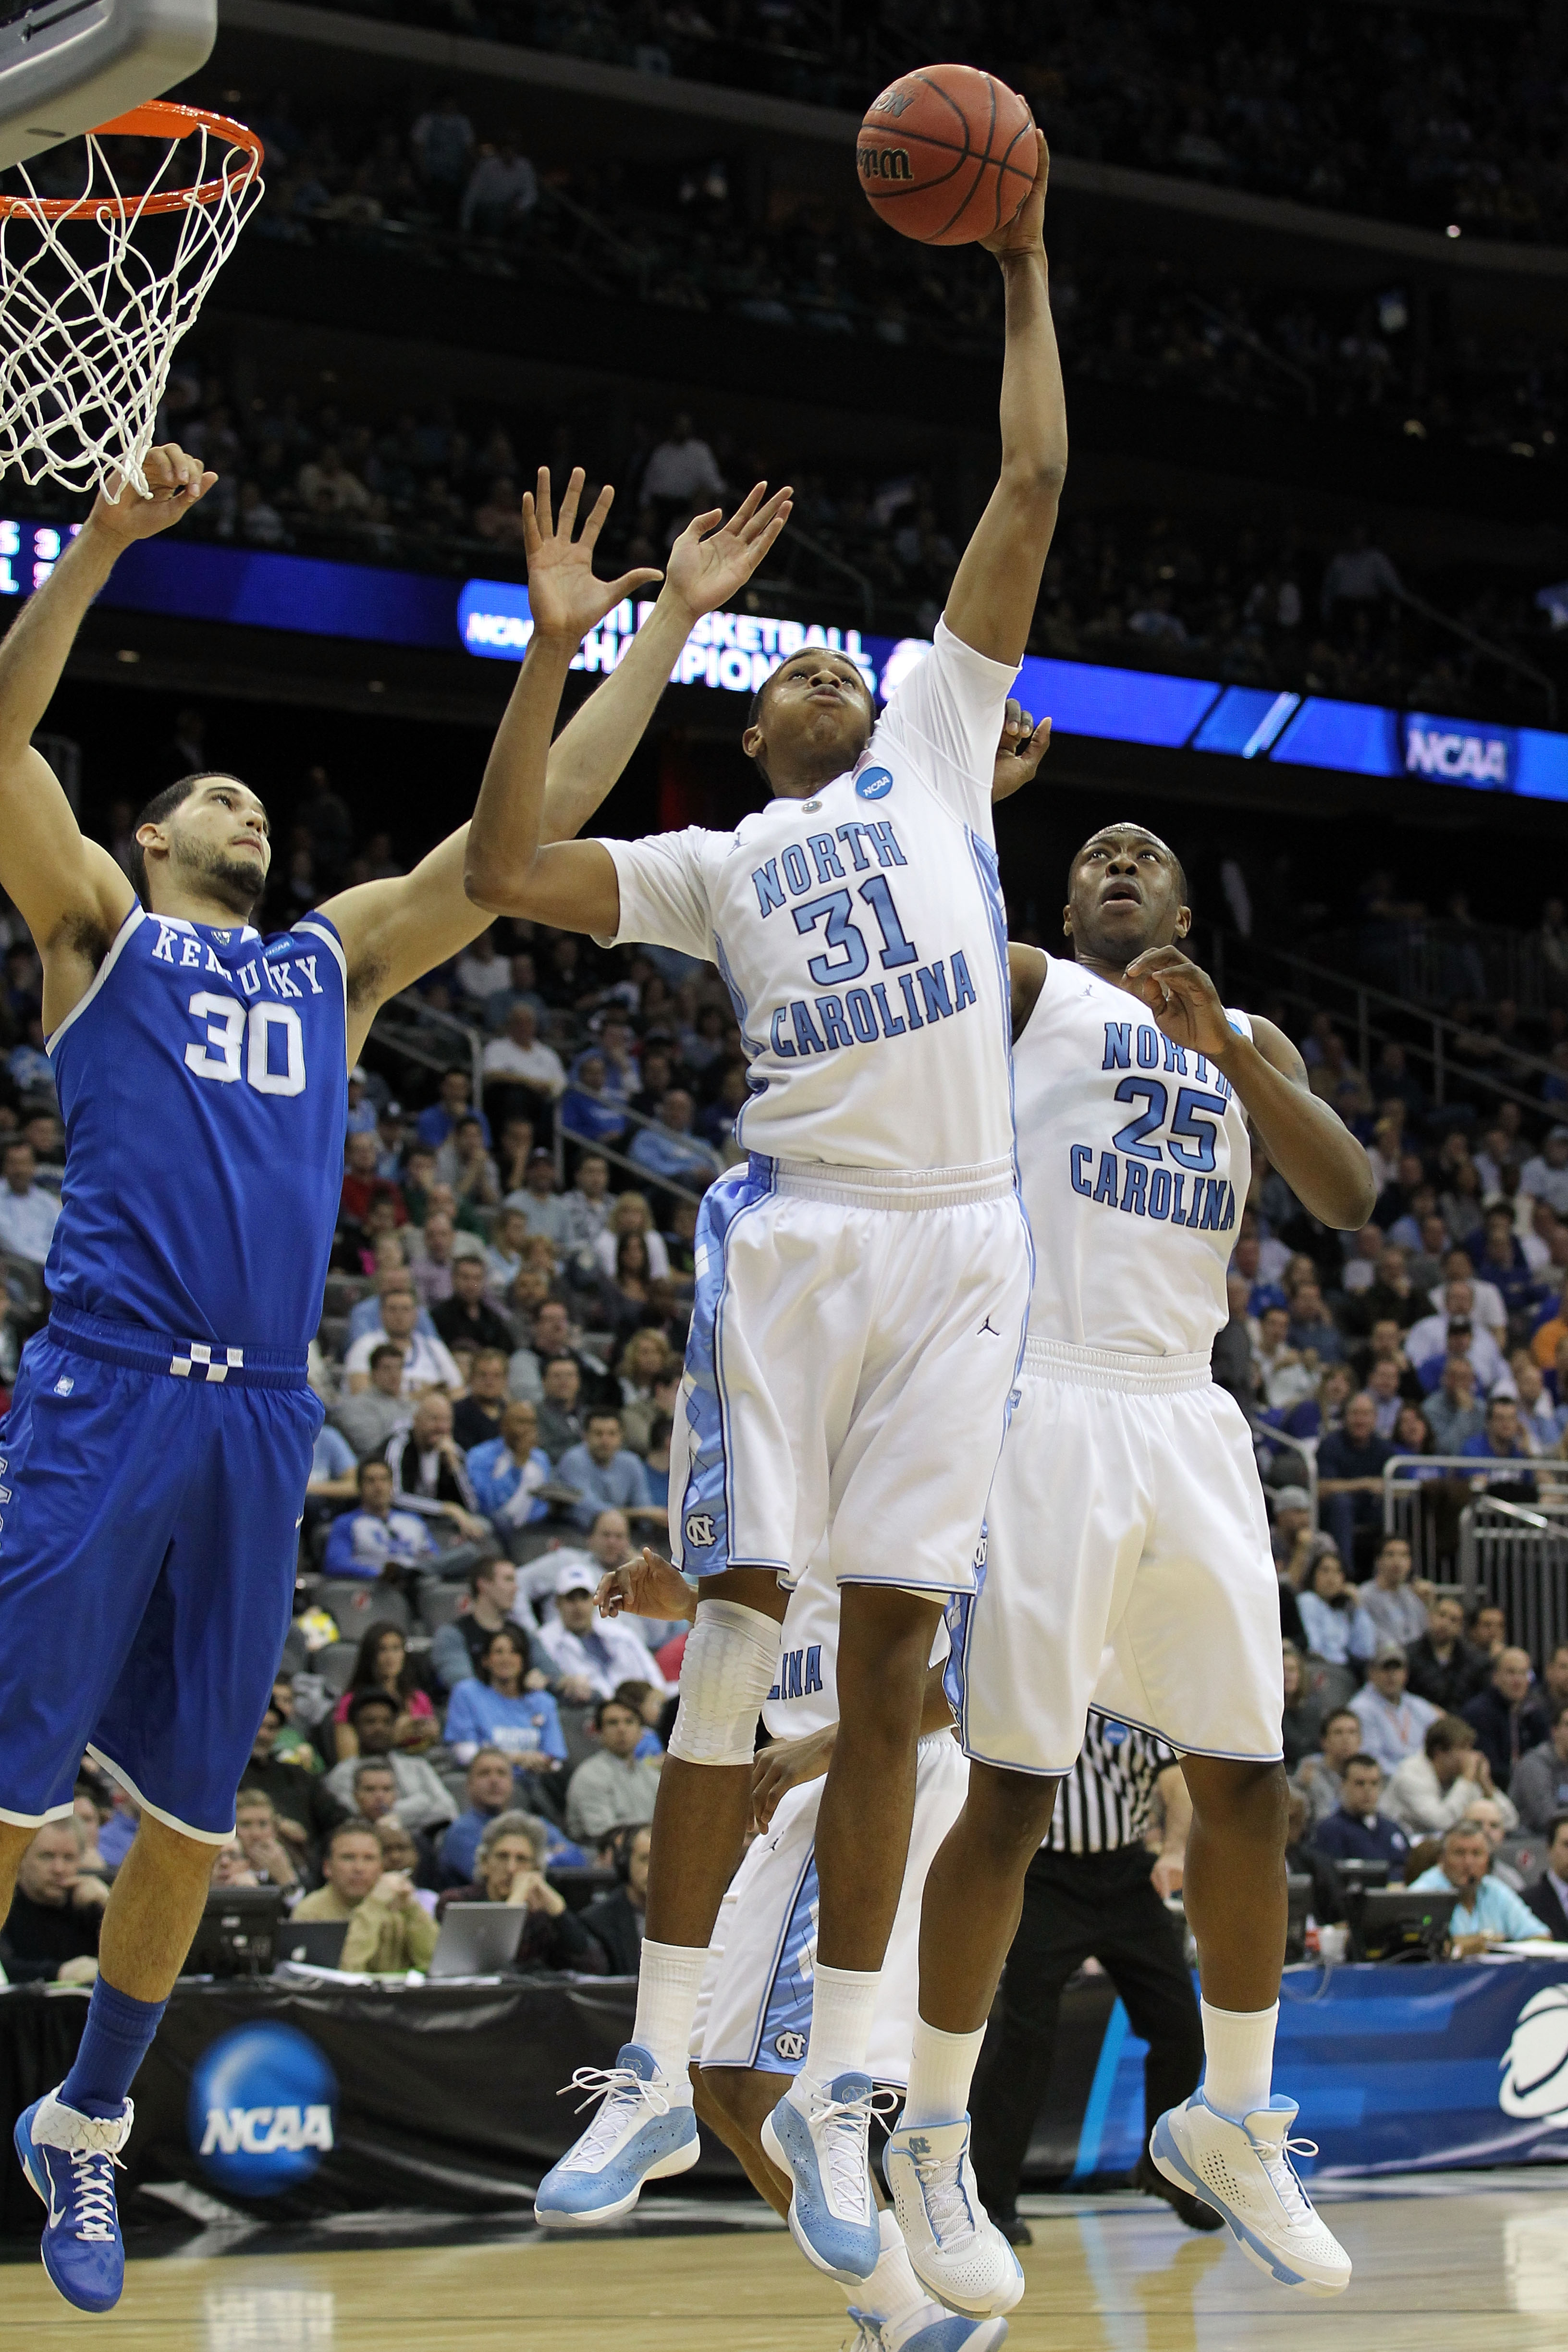 NEWARK, NJ - MARCH 27:  John Henson #31 of the North Carolina Tar Heels in action against Eloy Vargas #30 of the Kentucky Wildcats during the east regional final of the 2011 NCAA men's basketball tournament at Prudential Center on March 27, 2011 in Newark